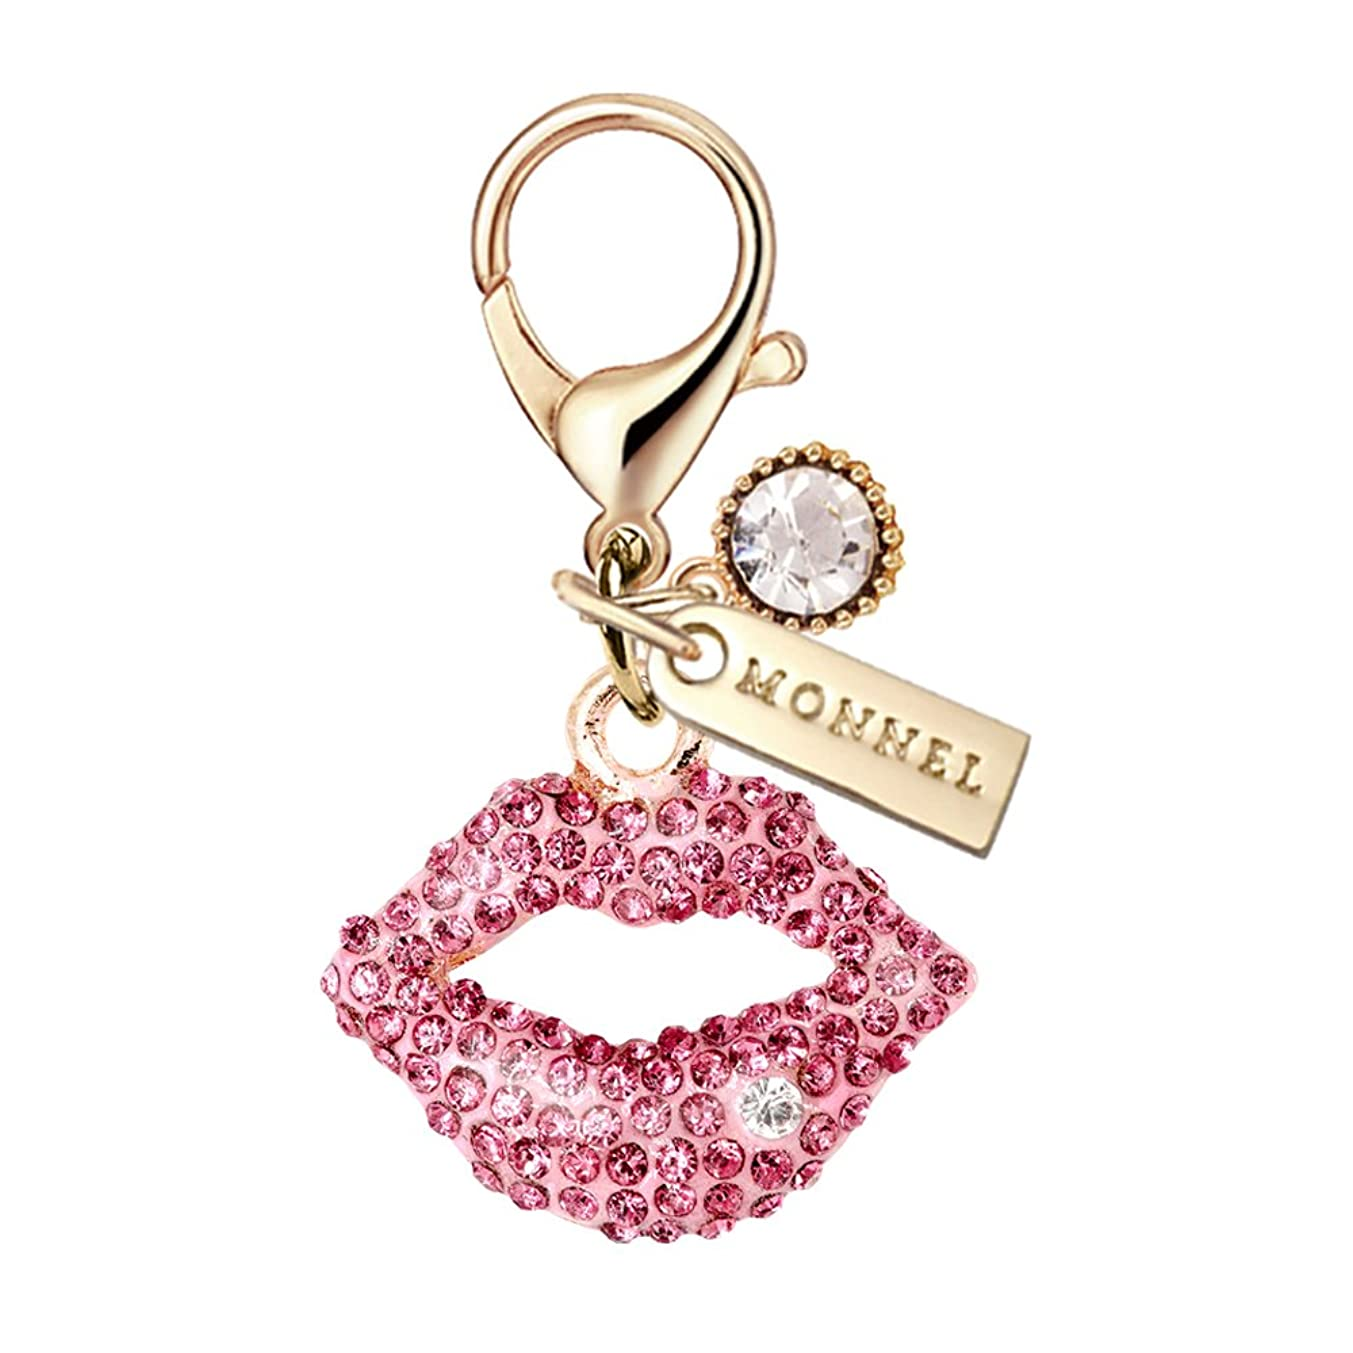 MC61 New Arrival Adorable Pink Crystal Kiss Lip Lobster Clasp Charms Pendants with Pouch Bag (1 Piece)